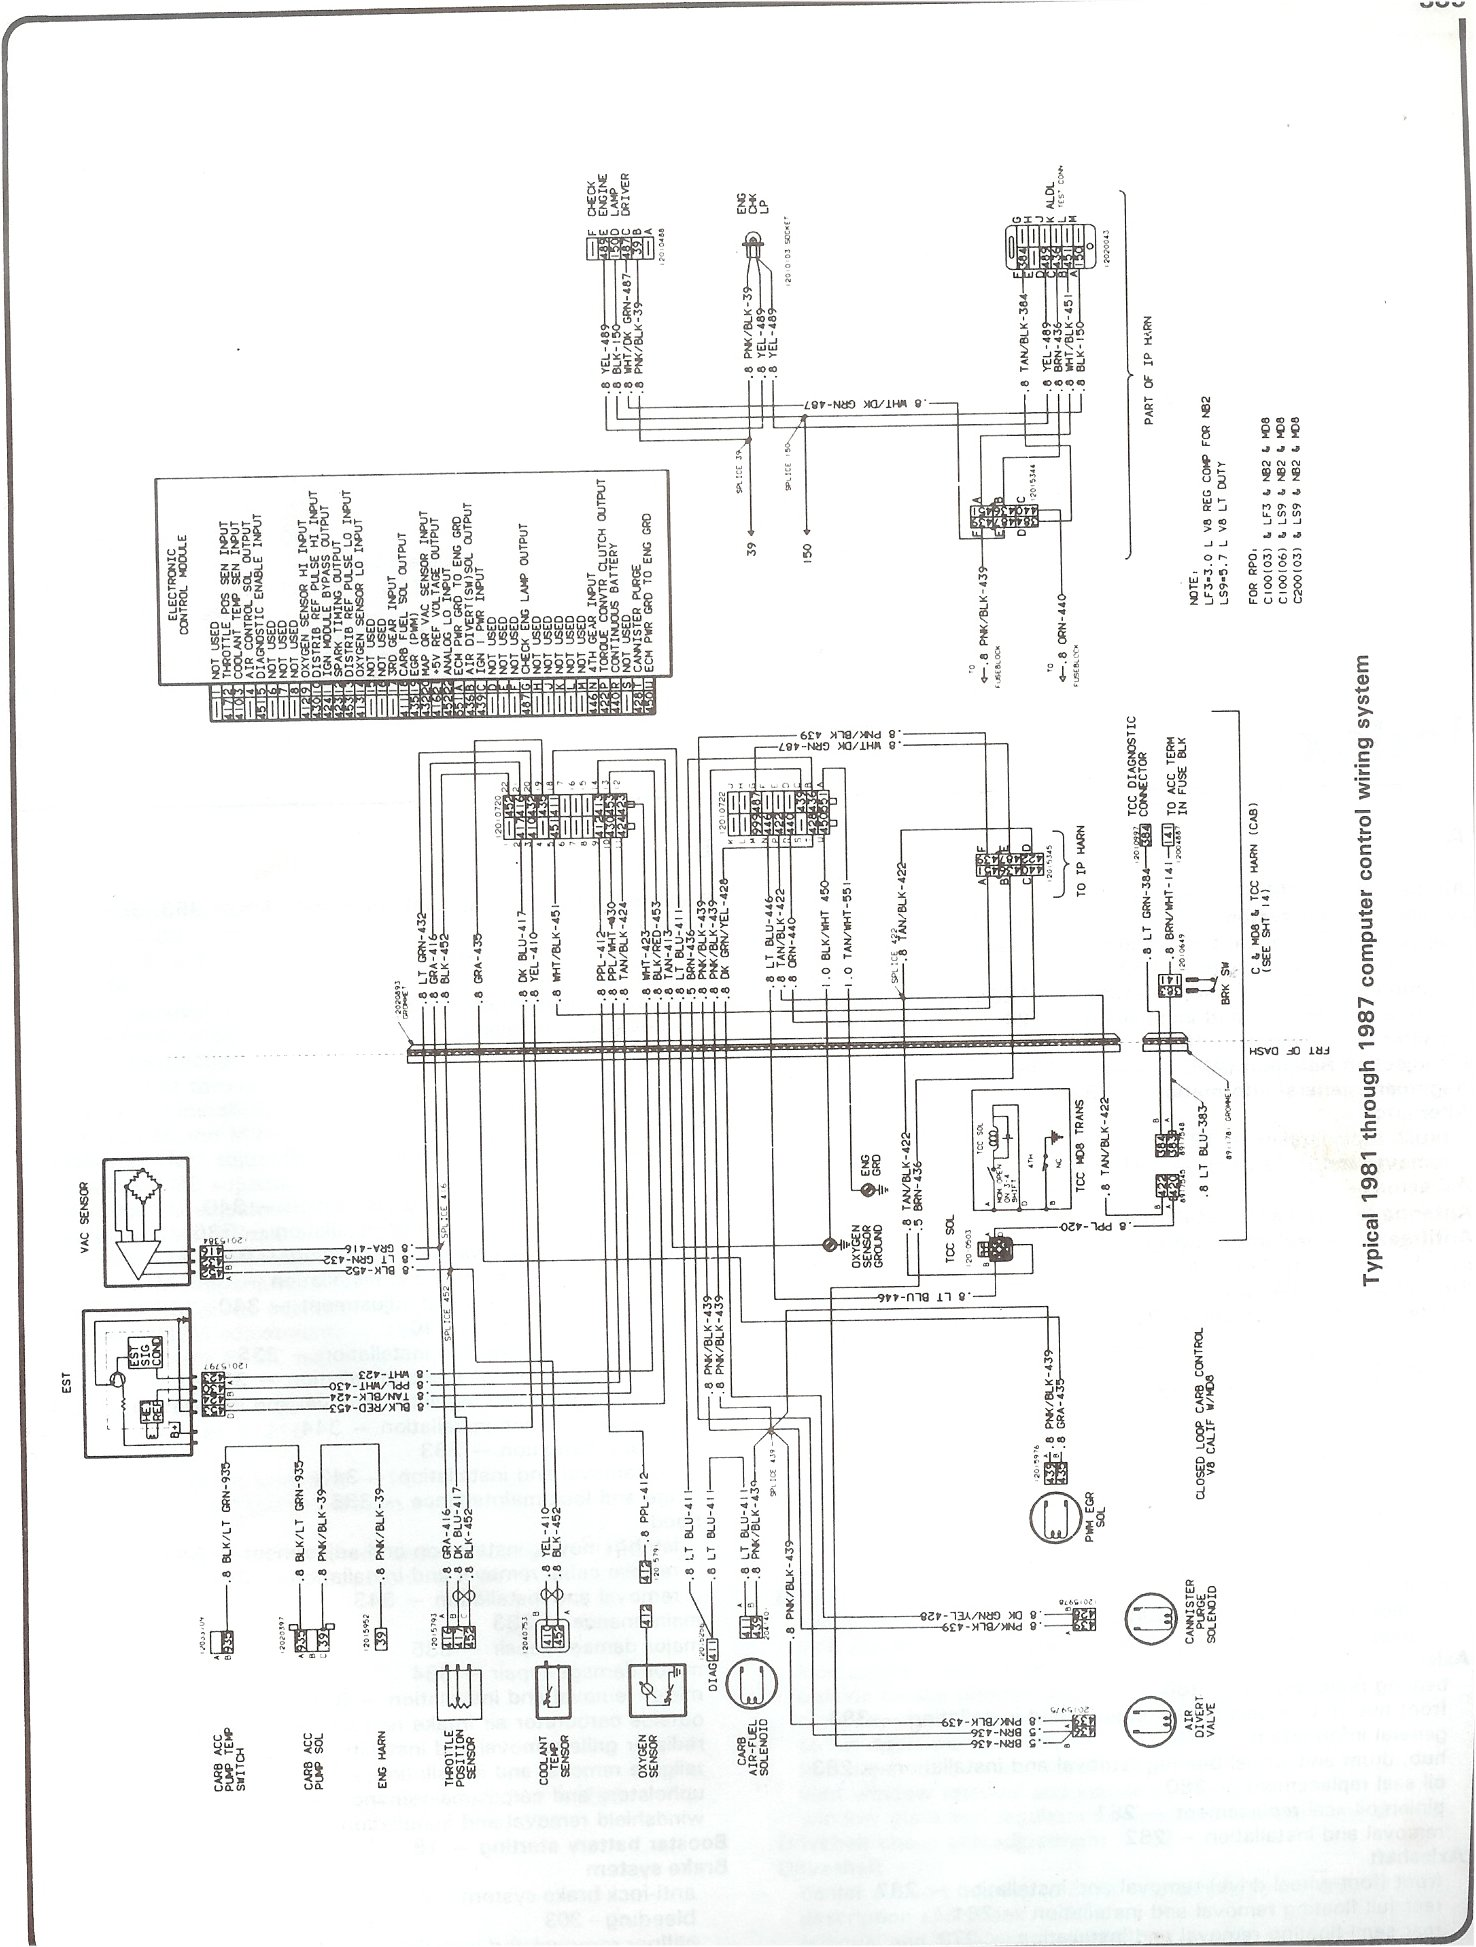 81 87_computer_control_wiring complete 73 87 wiring diagrams 2001 chevy silverado instrument cluster wiring diagram at gsmportal.co